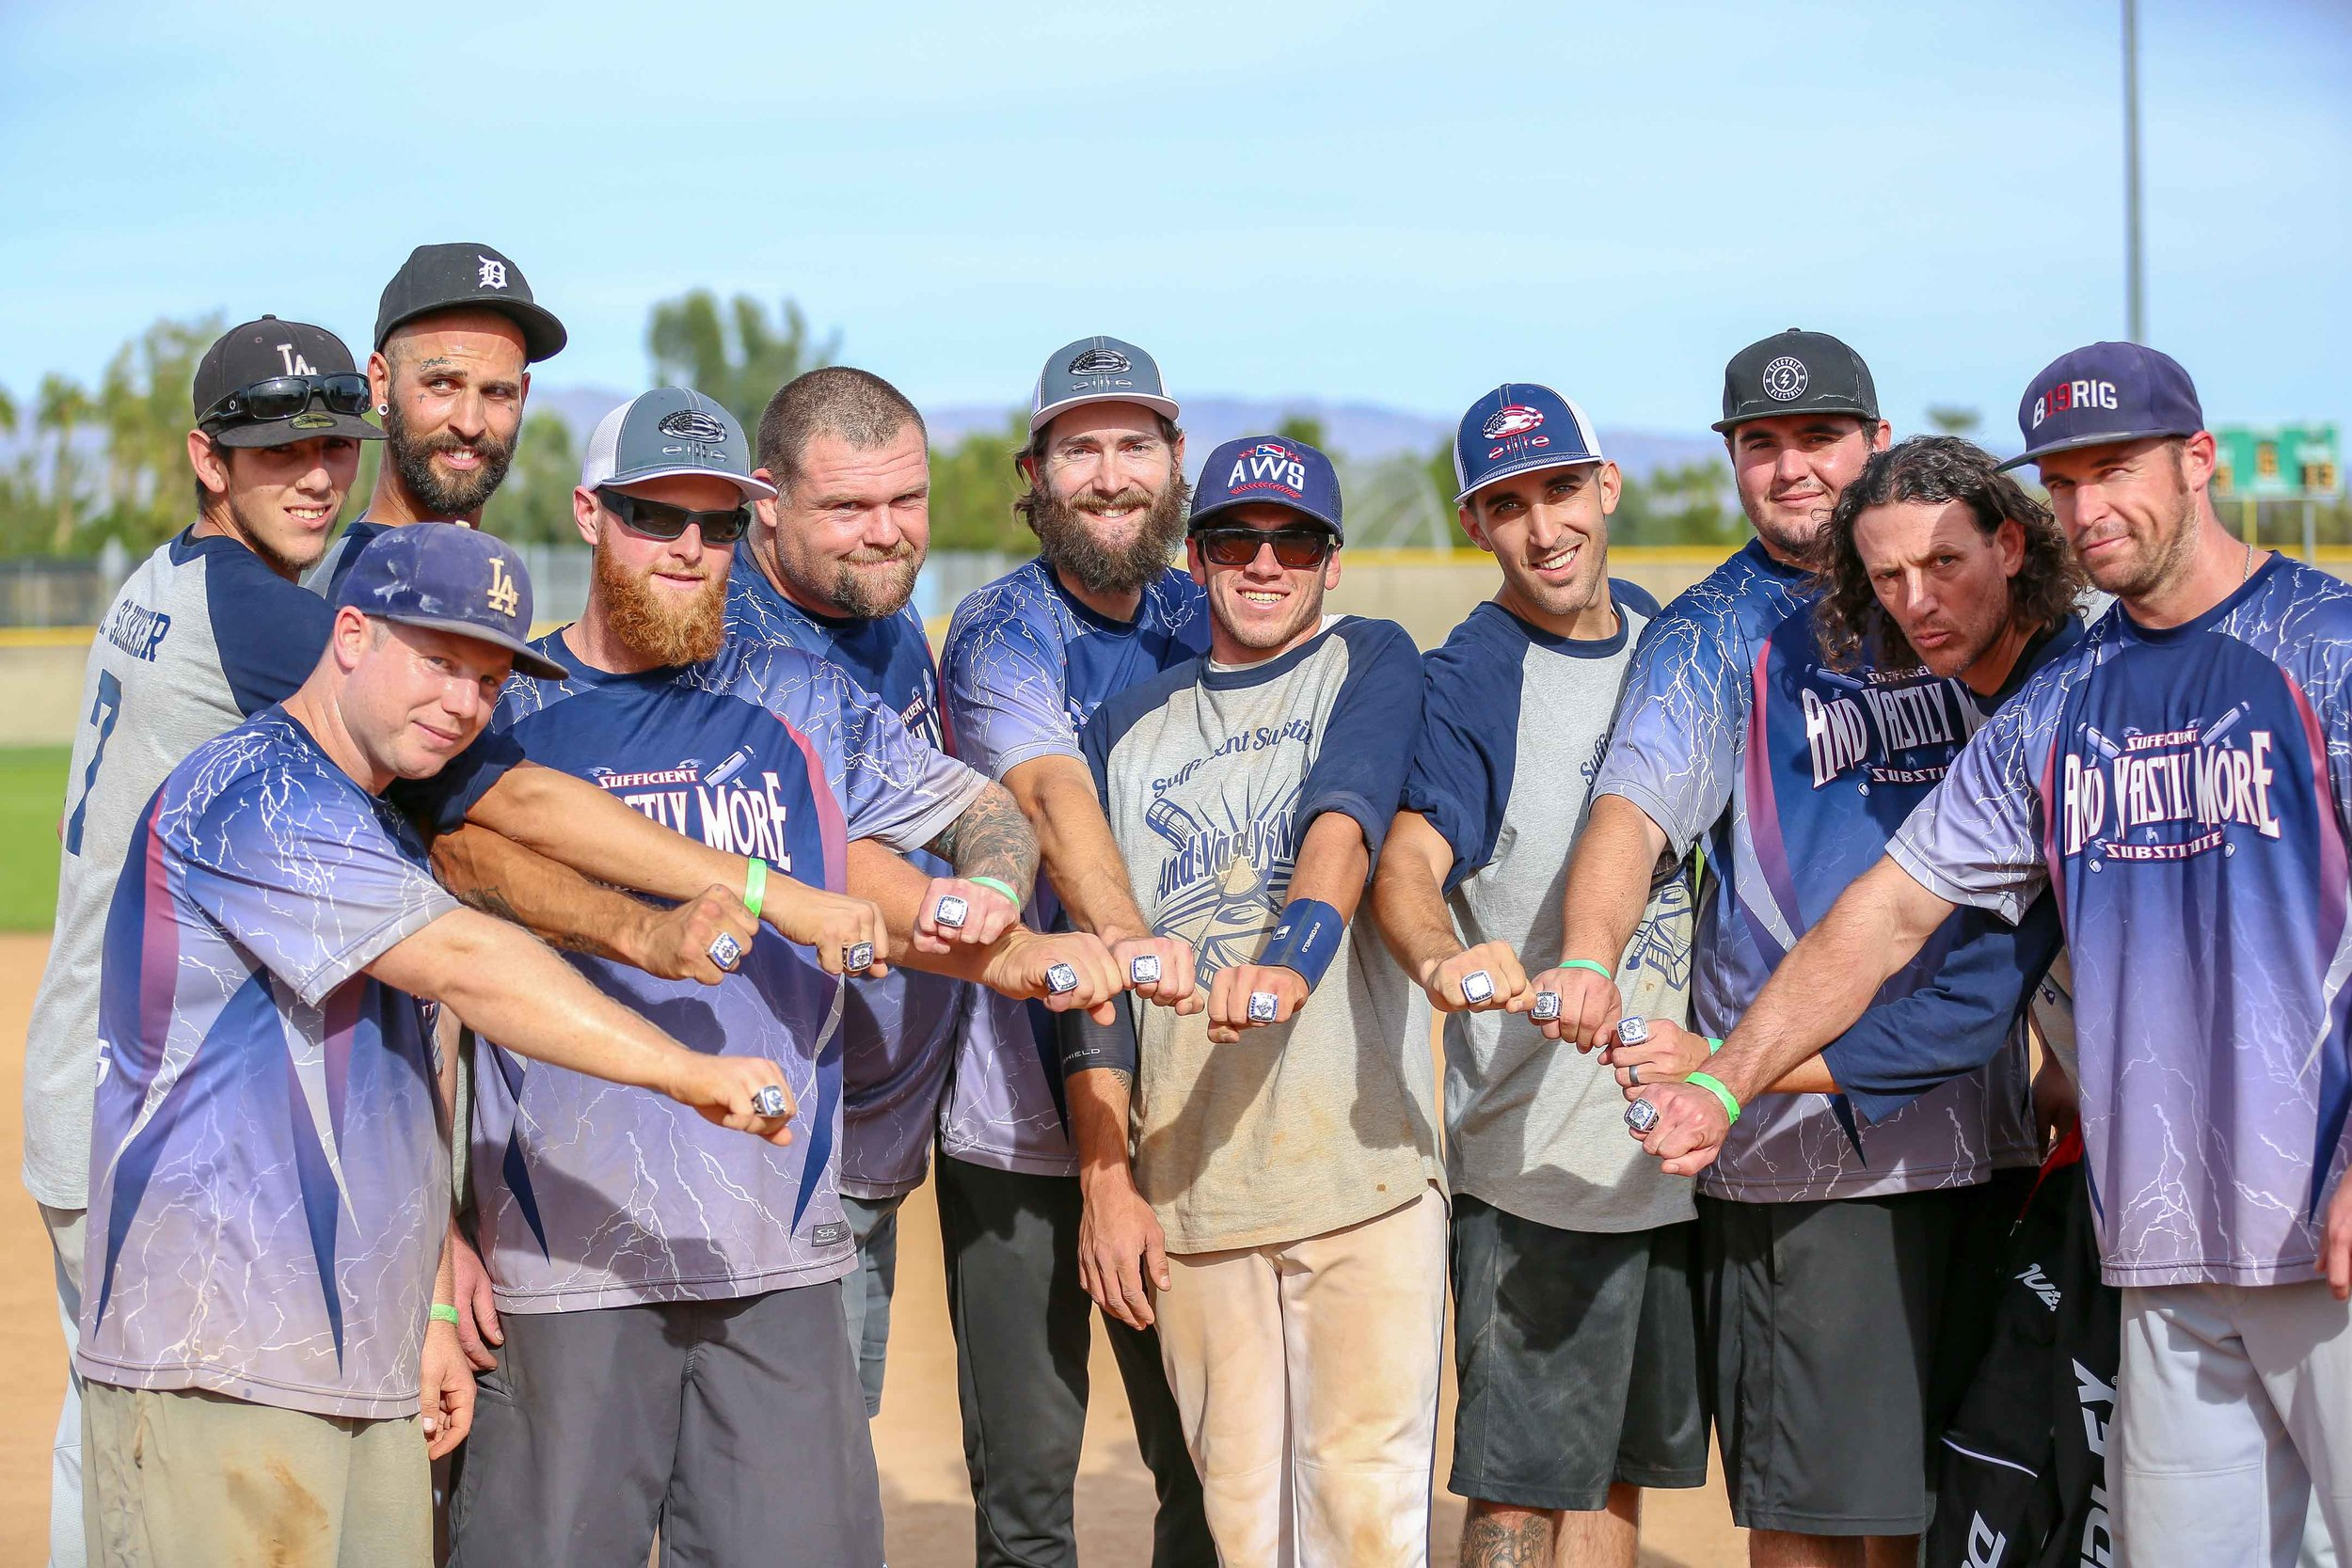 Mens - Congratulations And Vastly More! They battled through Men's lowers and won the ship!